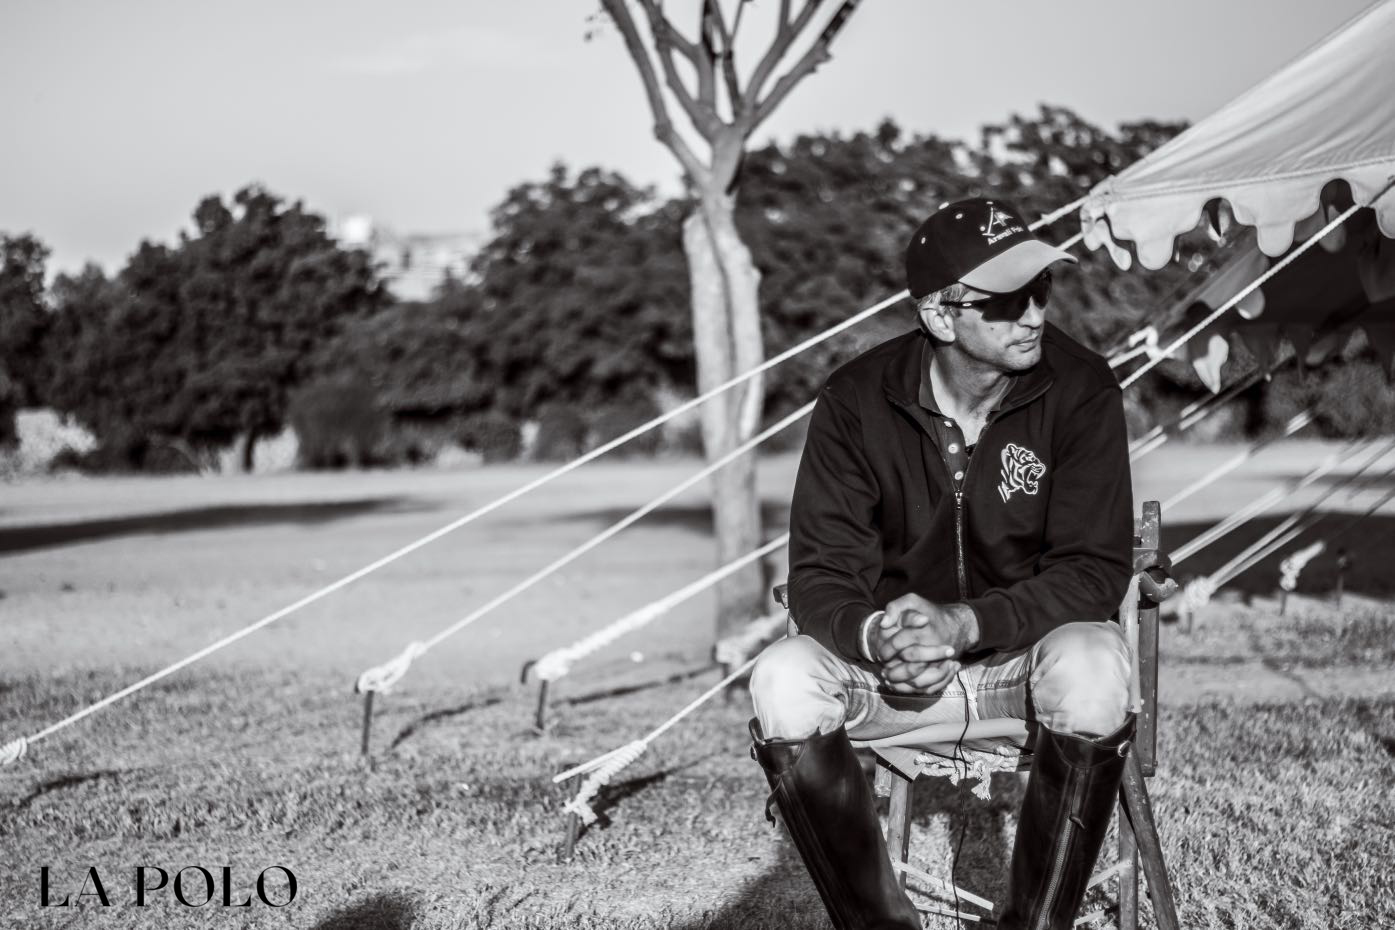 What's Angad Kalaan Polo Inspiration? Find Out...